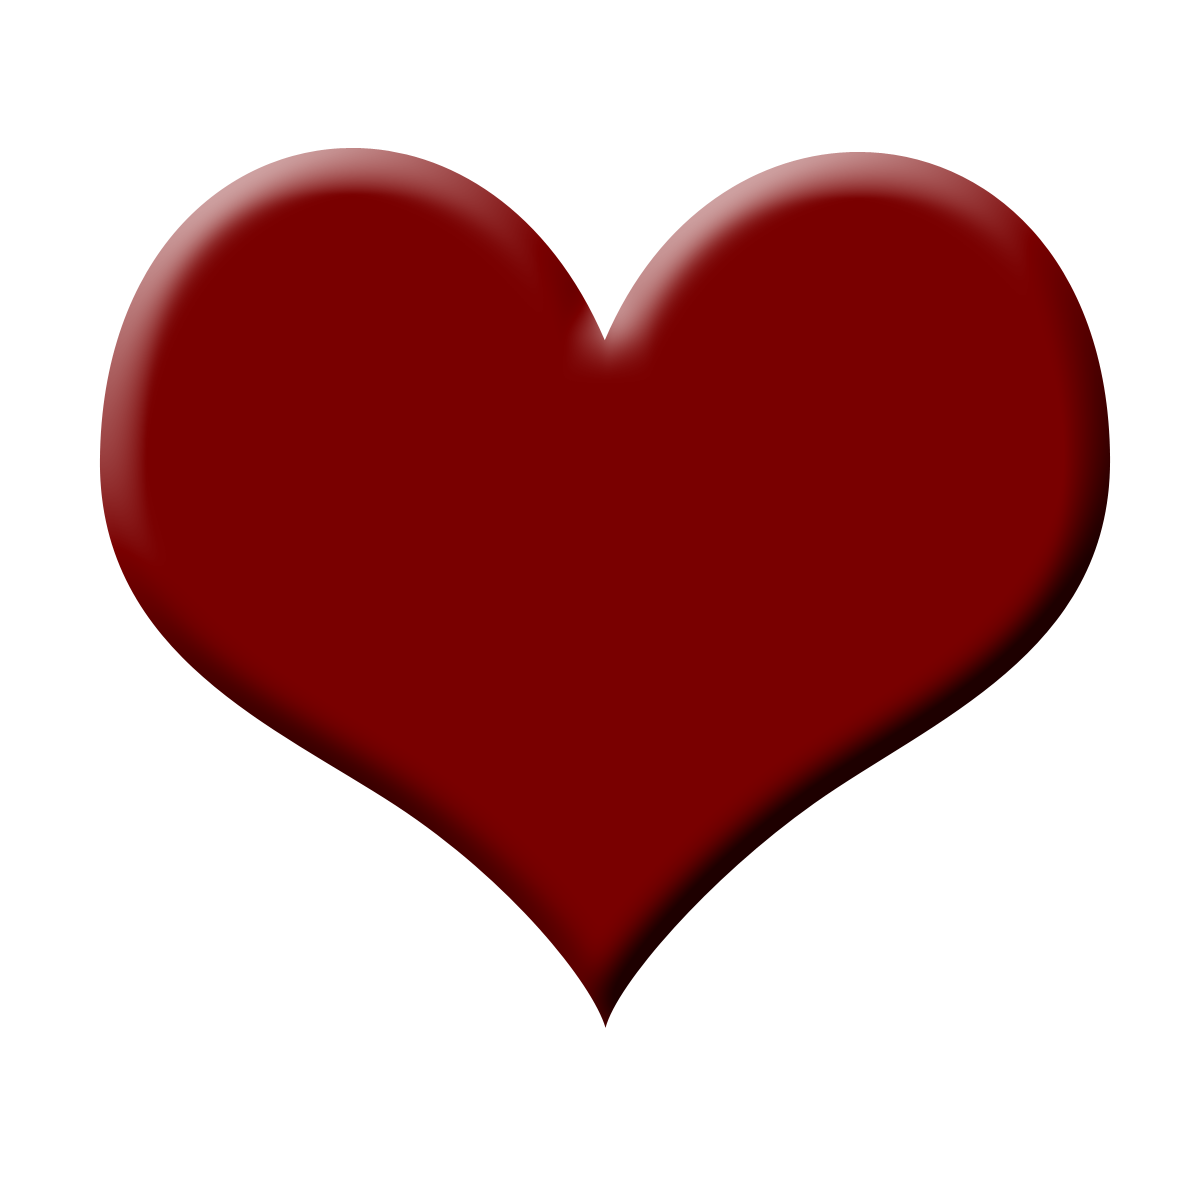 Hearts clipart love. Heart panda free images